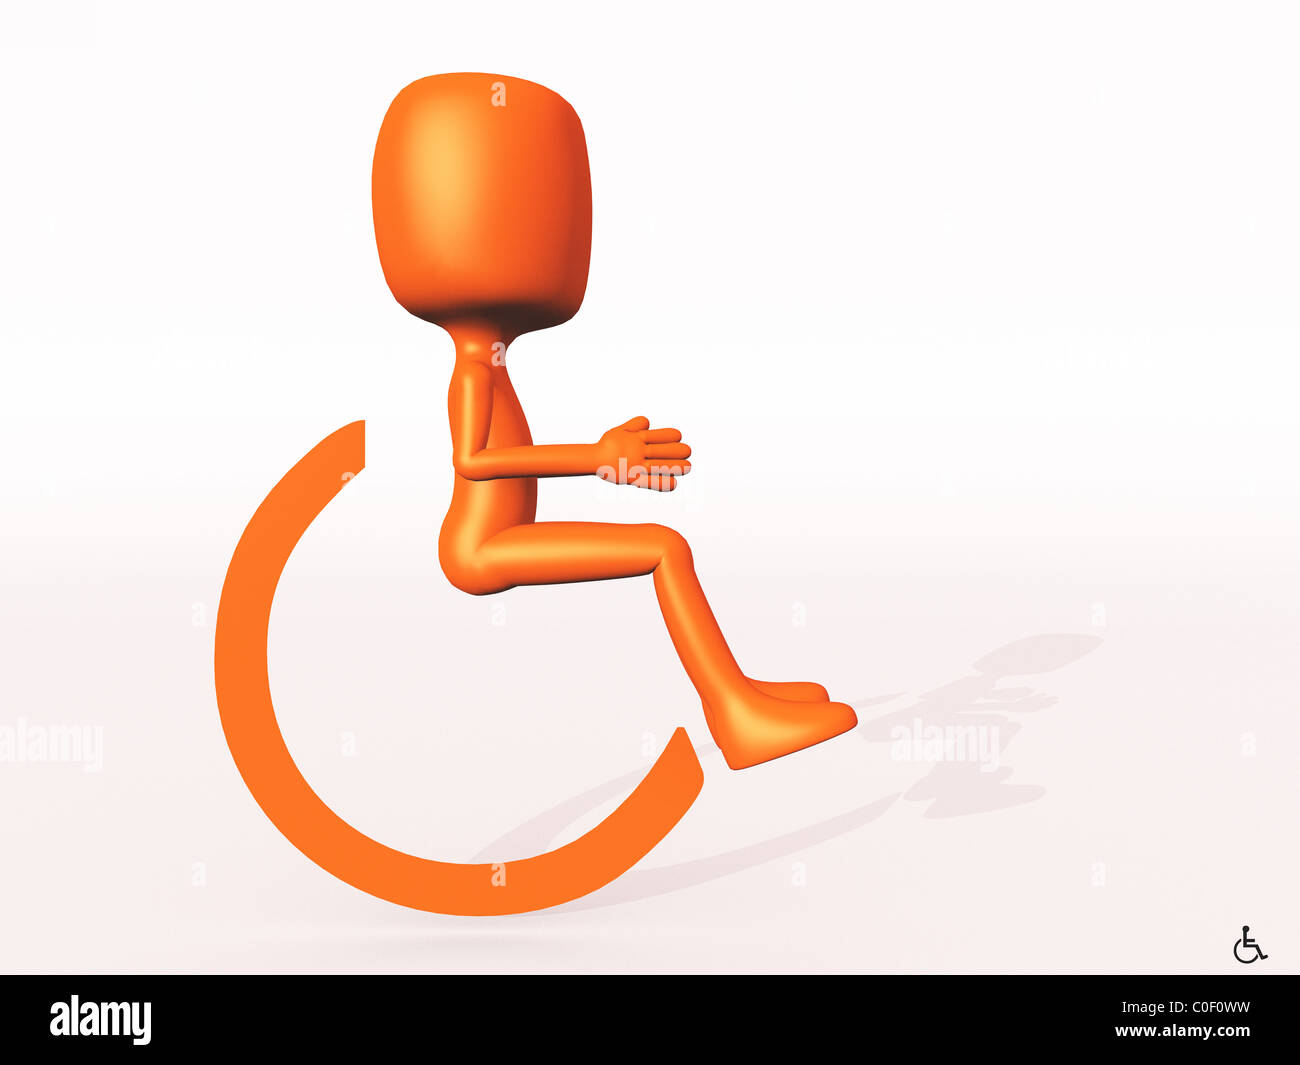 Sign - Wheelchair - Stock Image